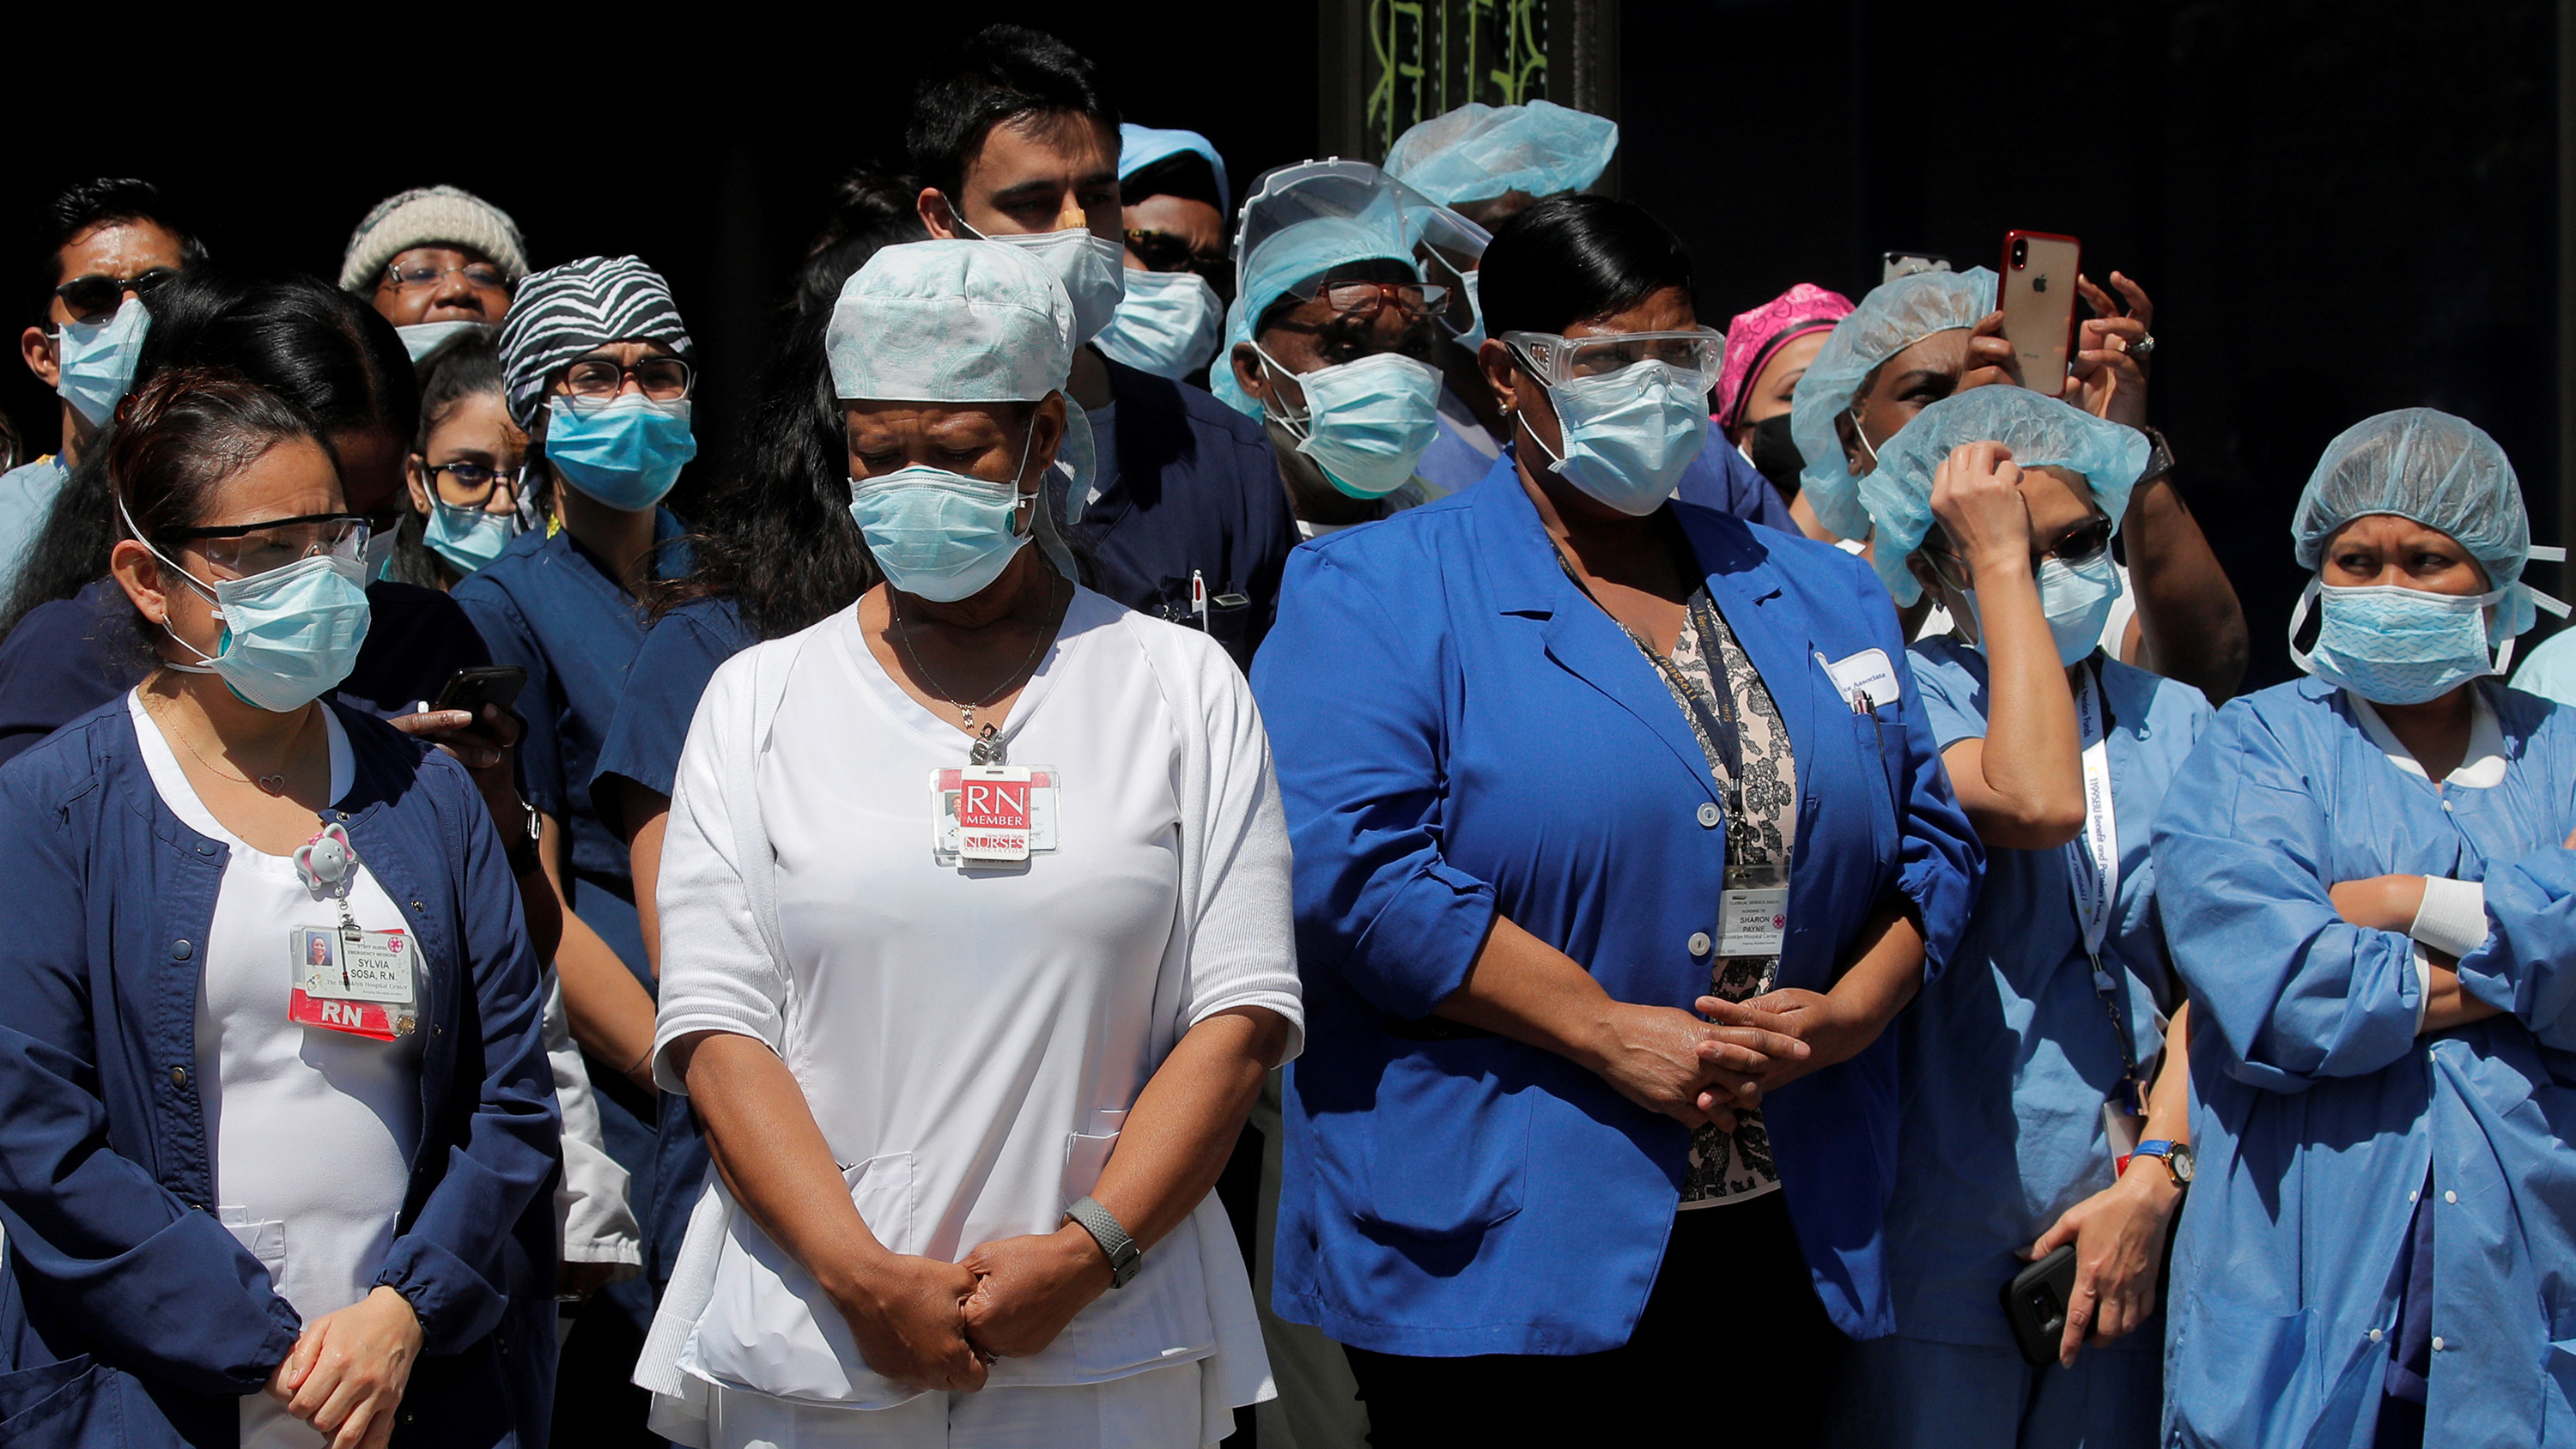 The photo shows a huge number of health workers standing quietly waiting.